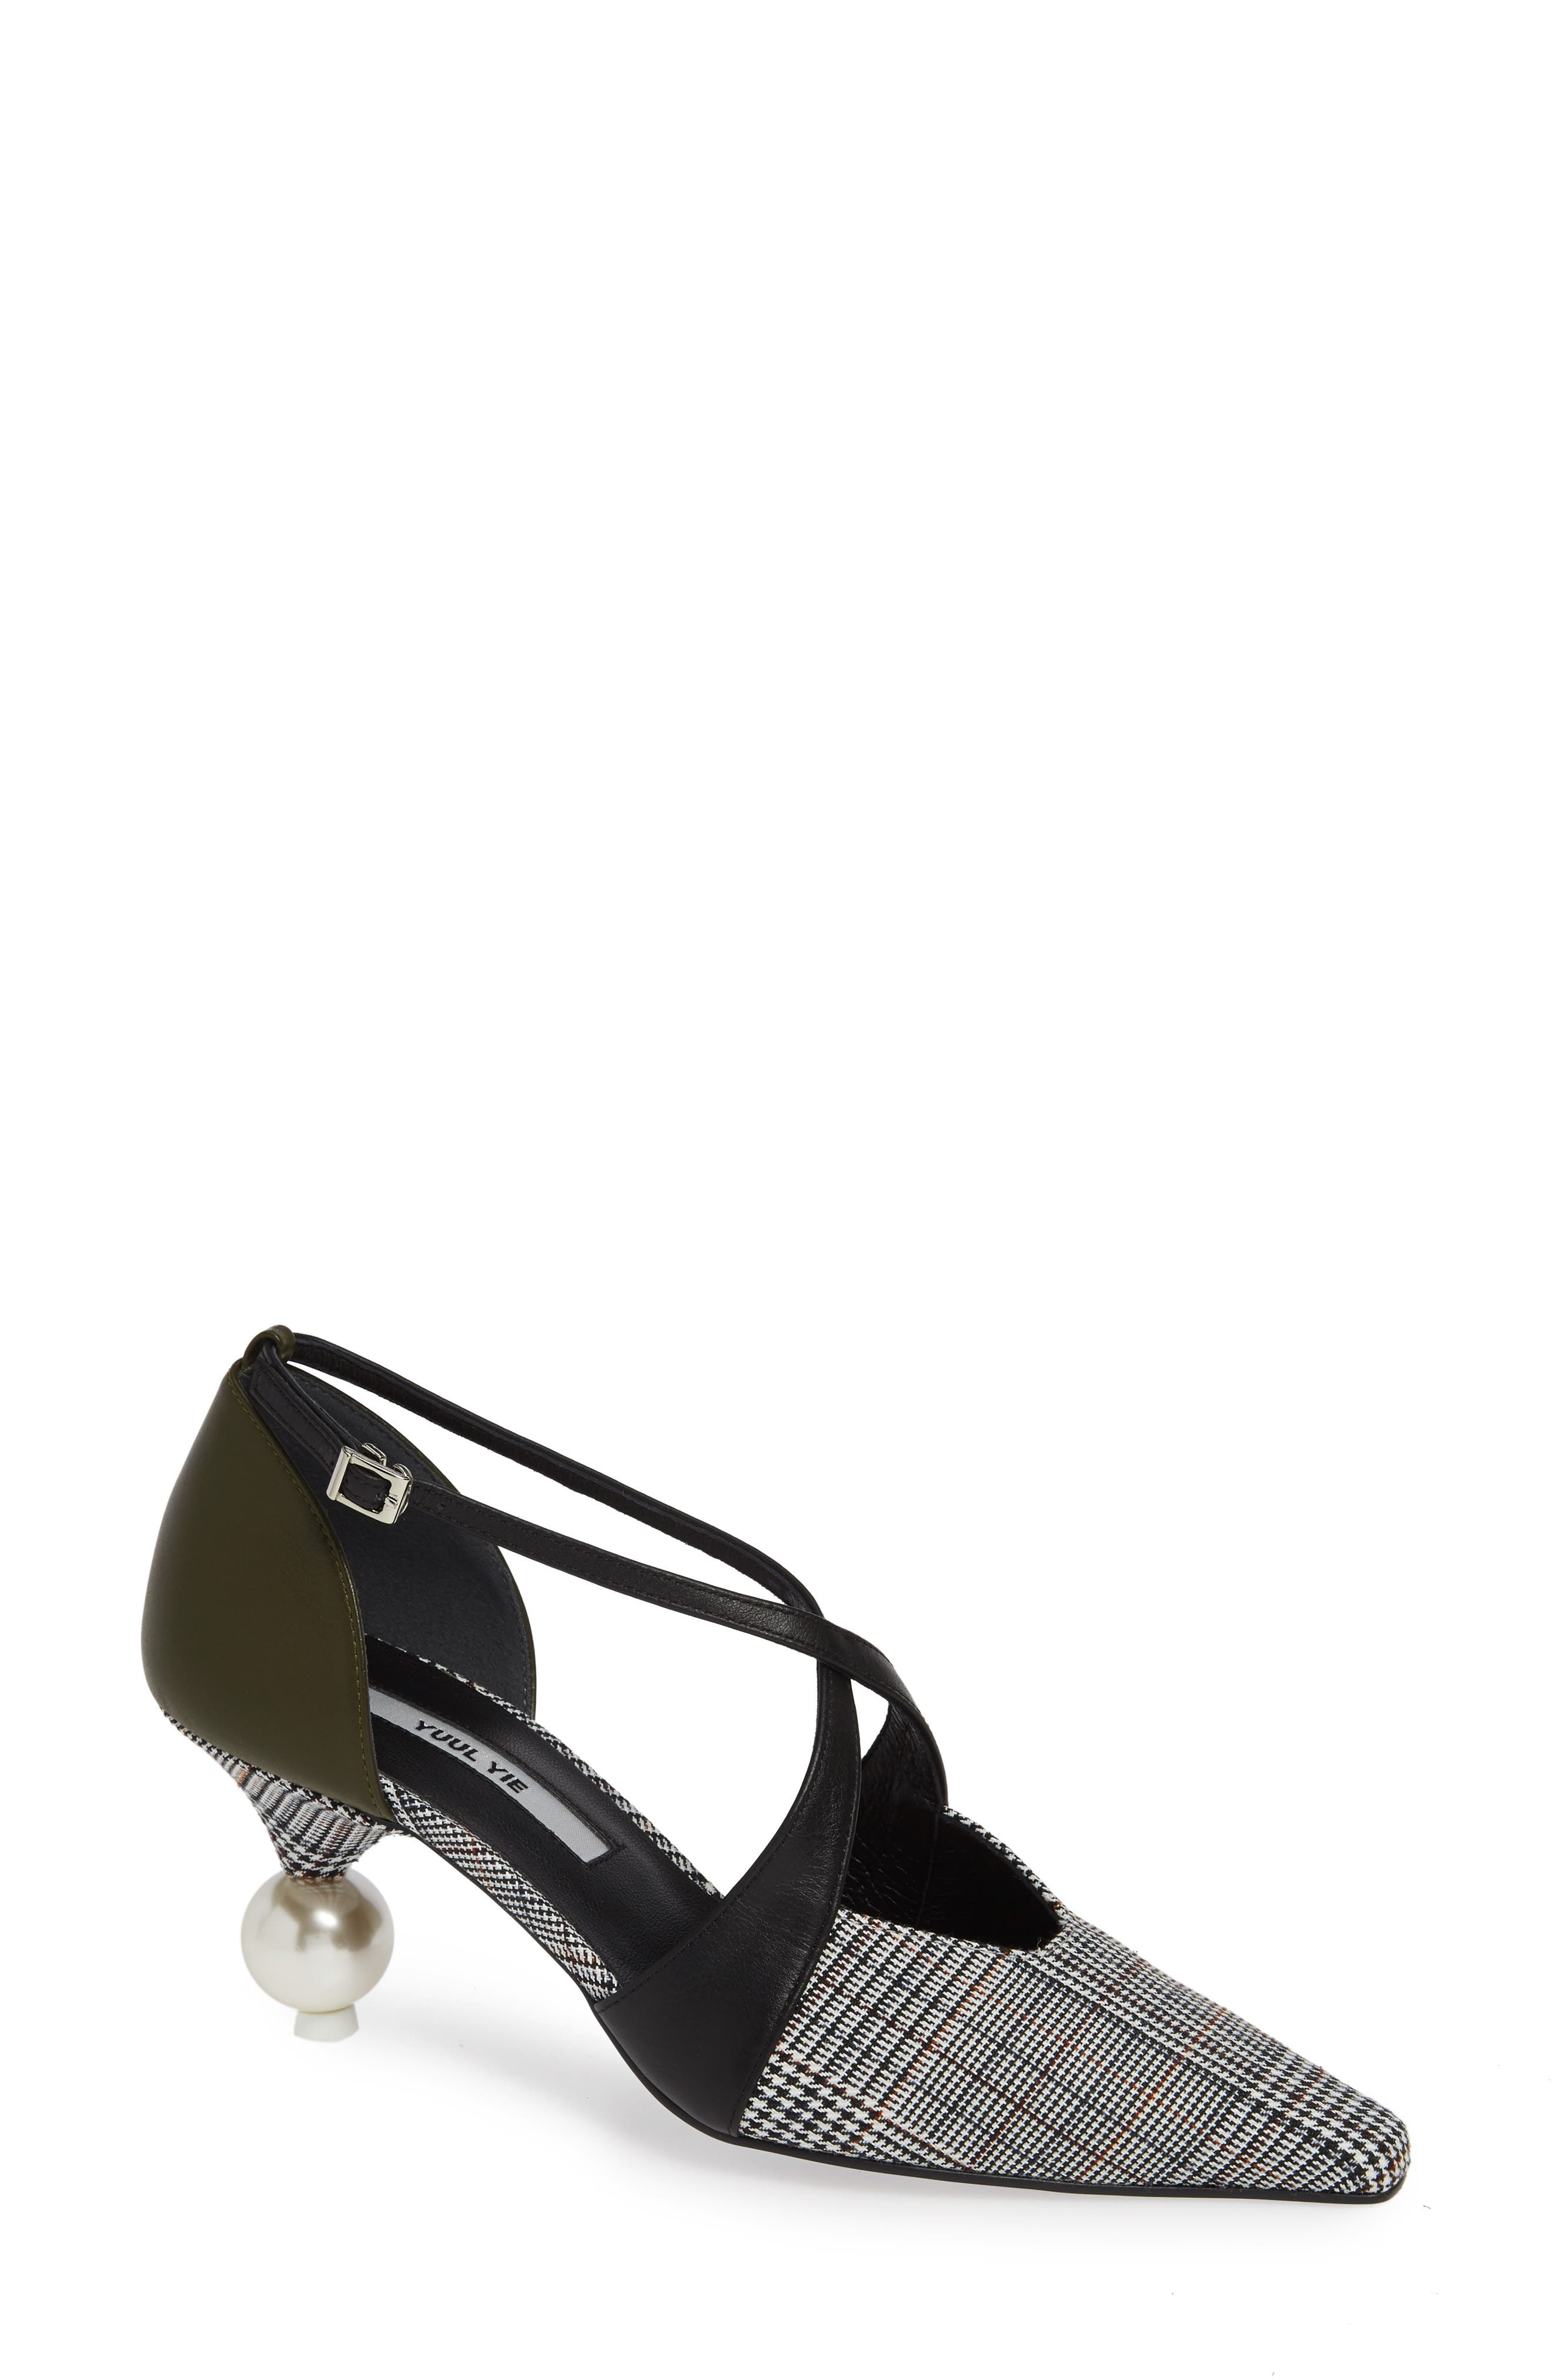 Faux Fur Statement Heel Pump in Grey Check/ Olive/ Black